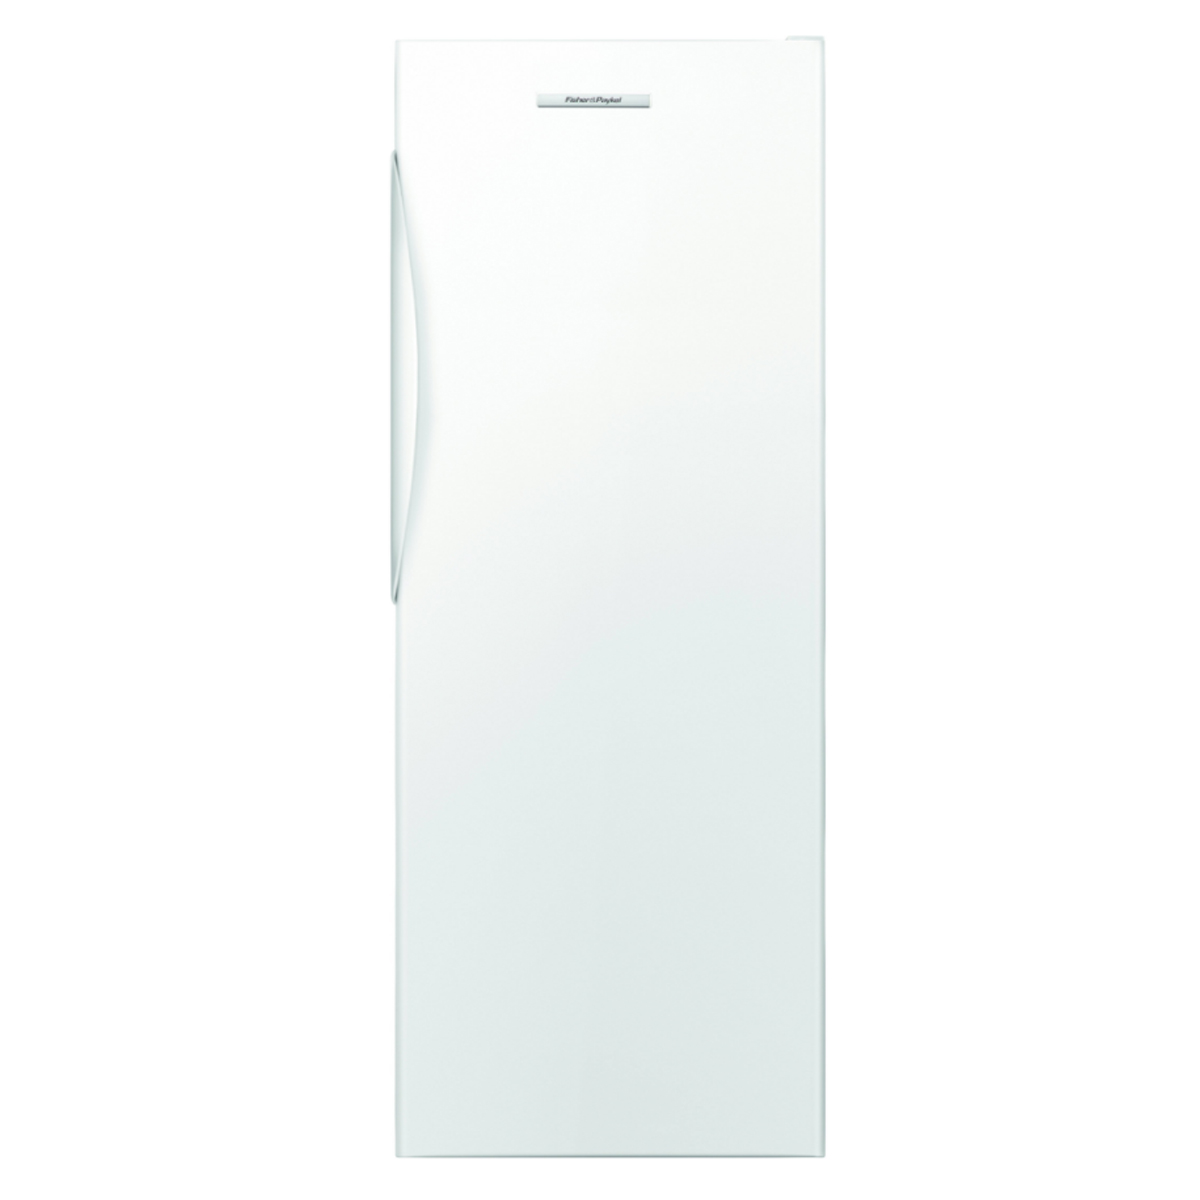 Online Fridge Fridges And Freezers Home Clearance Appliances Online